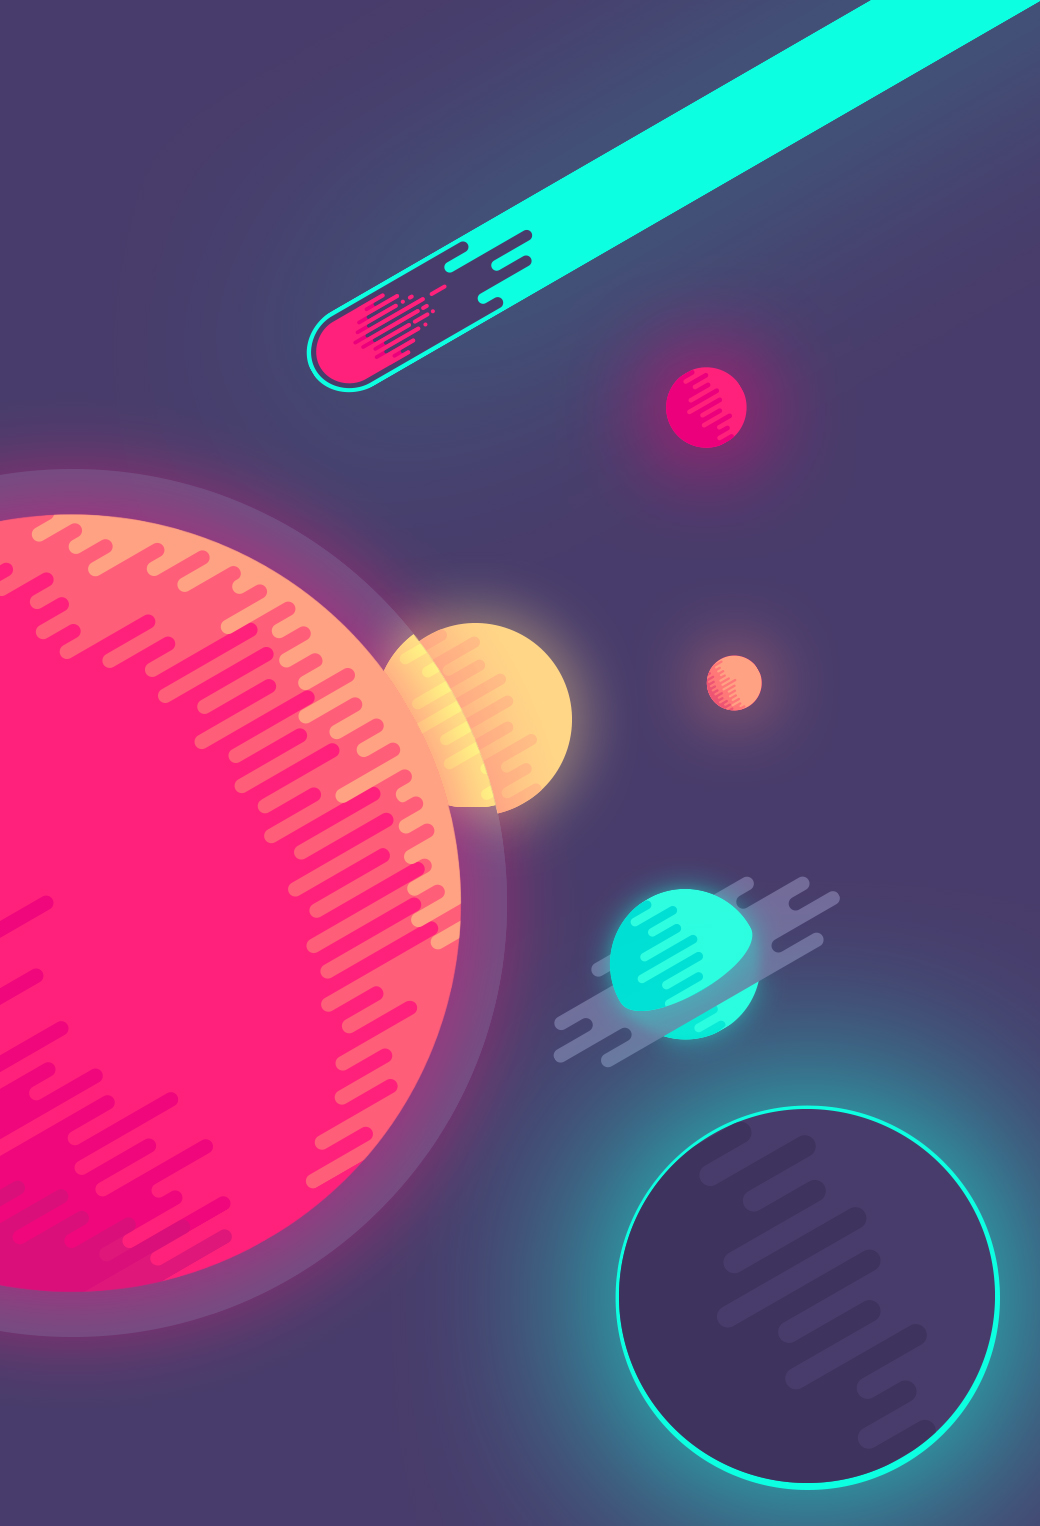 Space #Wallpaper | Phone wallpapers | Pinterest